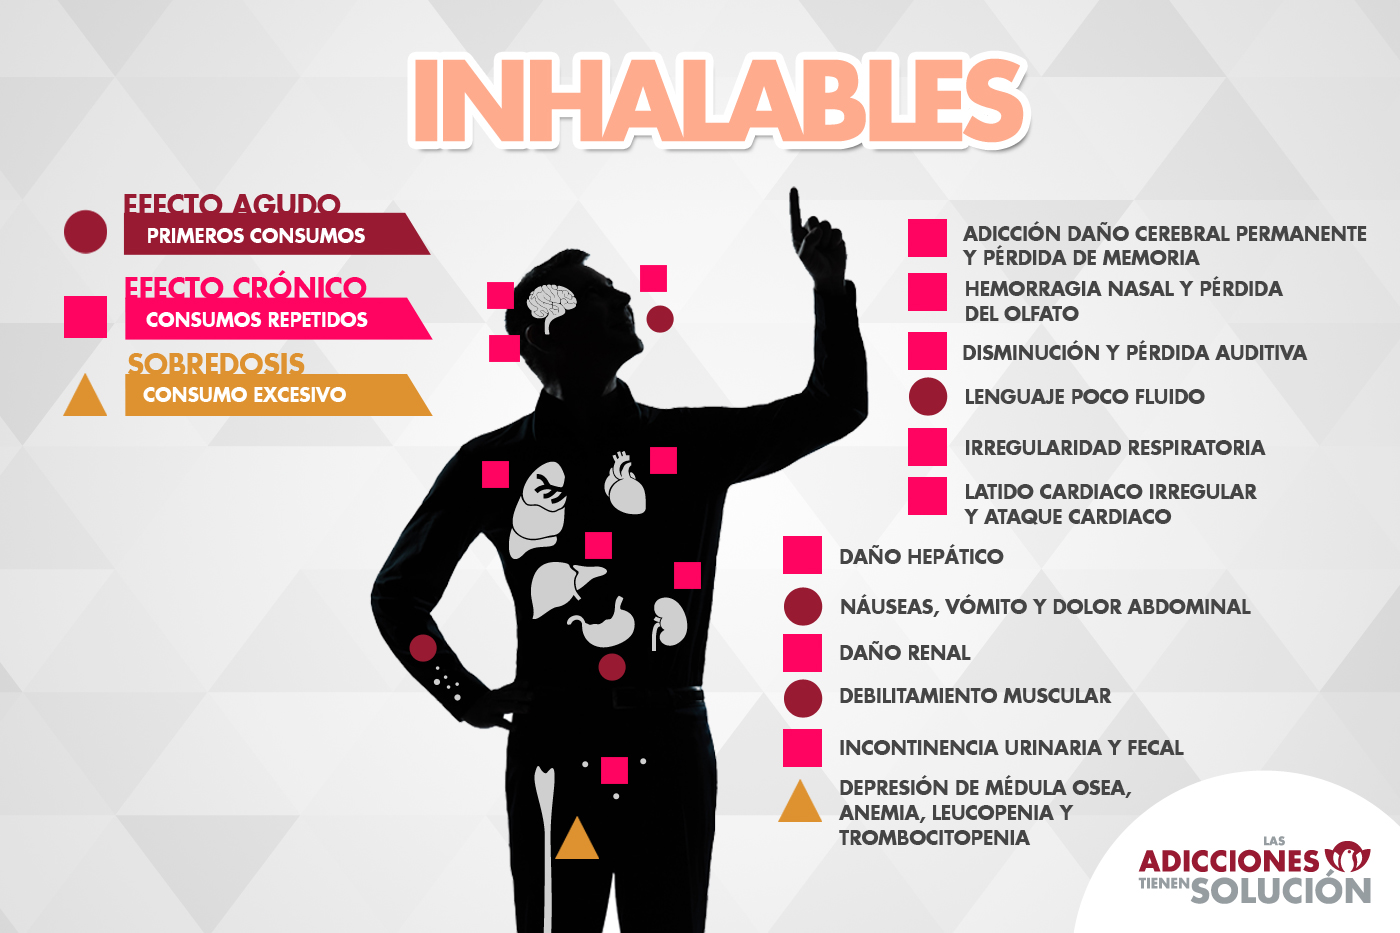 inhalables